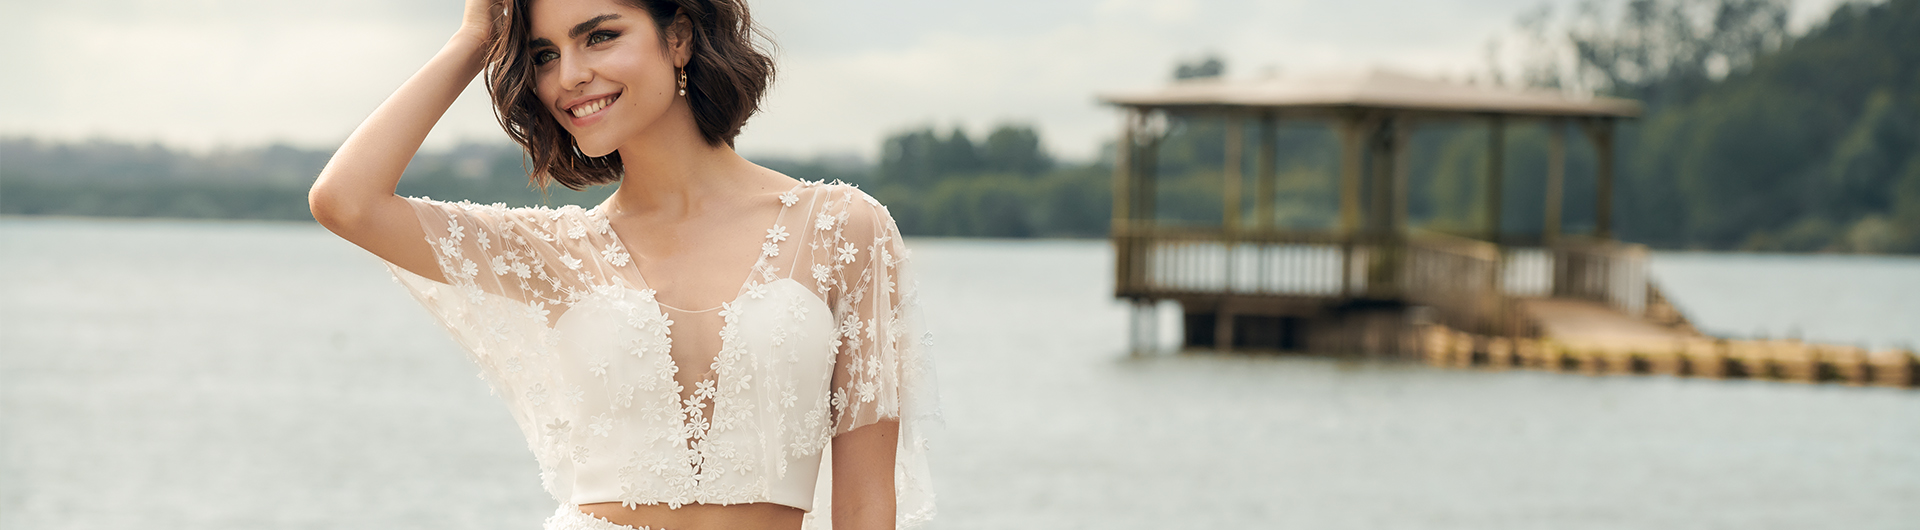 Renaux bridal dress - landscape